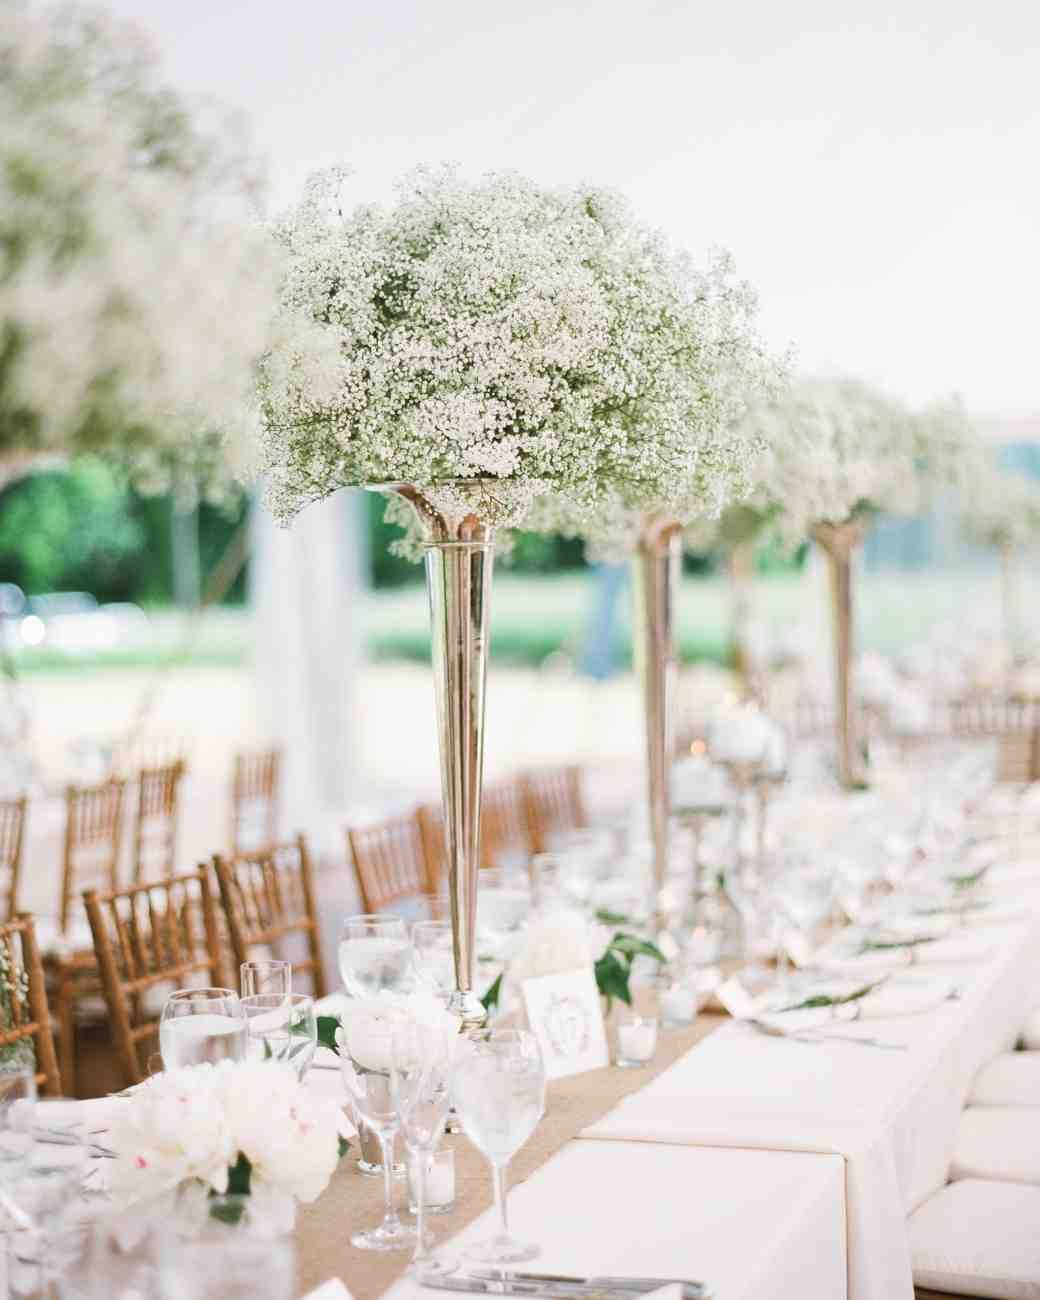 Affordable Wedding Centerpieces That Still Look Elevated | Pinterest ...